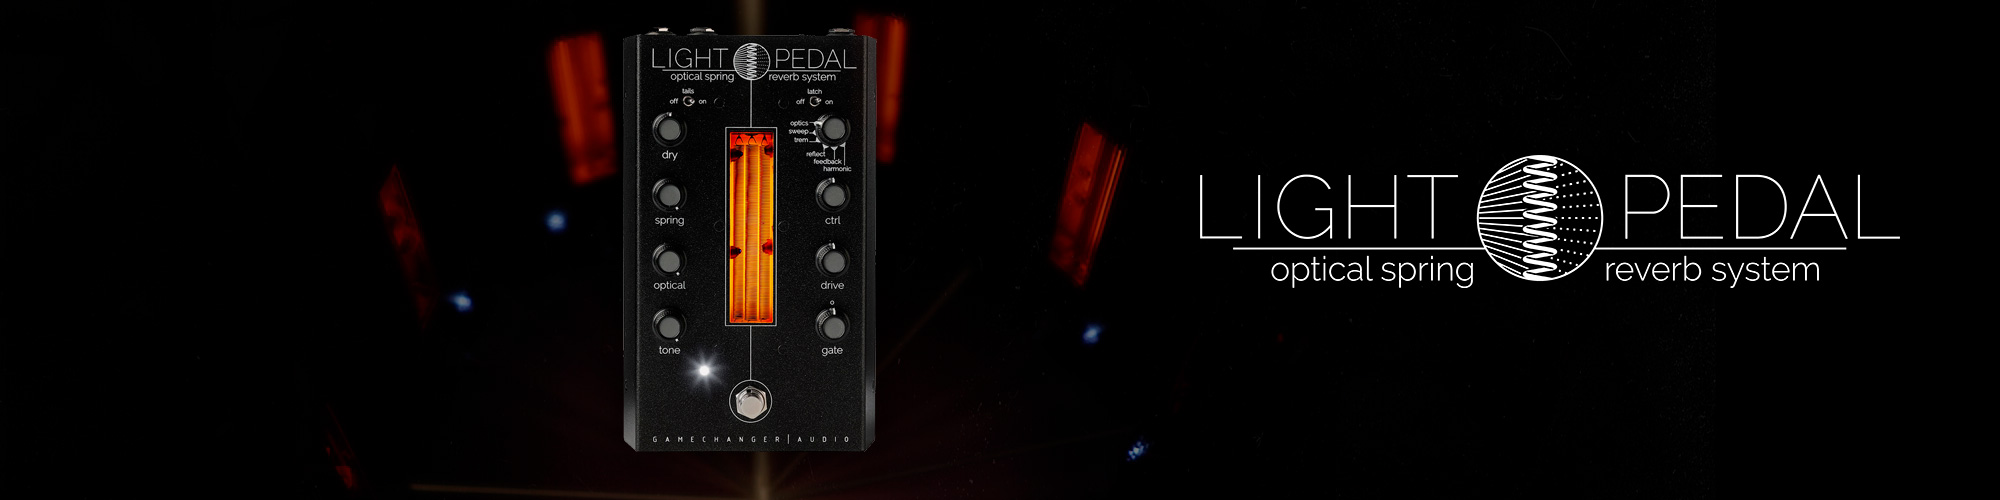 Gamechanger Audio LIGHT Pedal